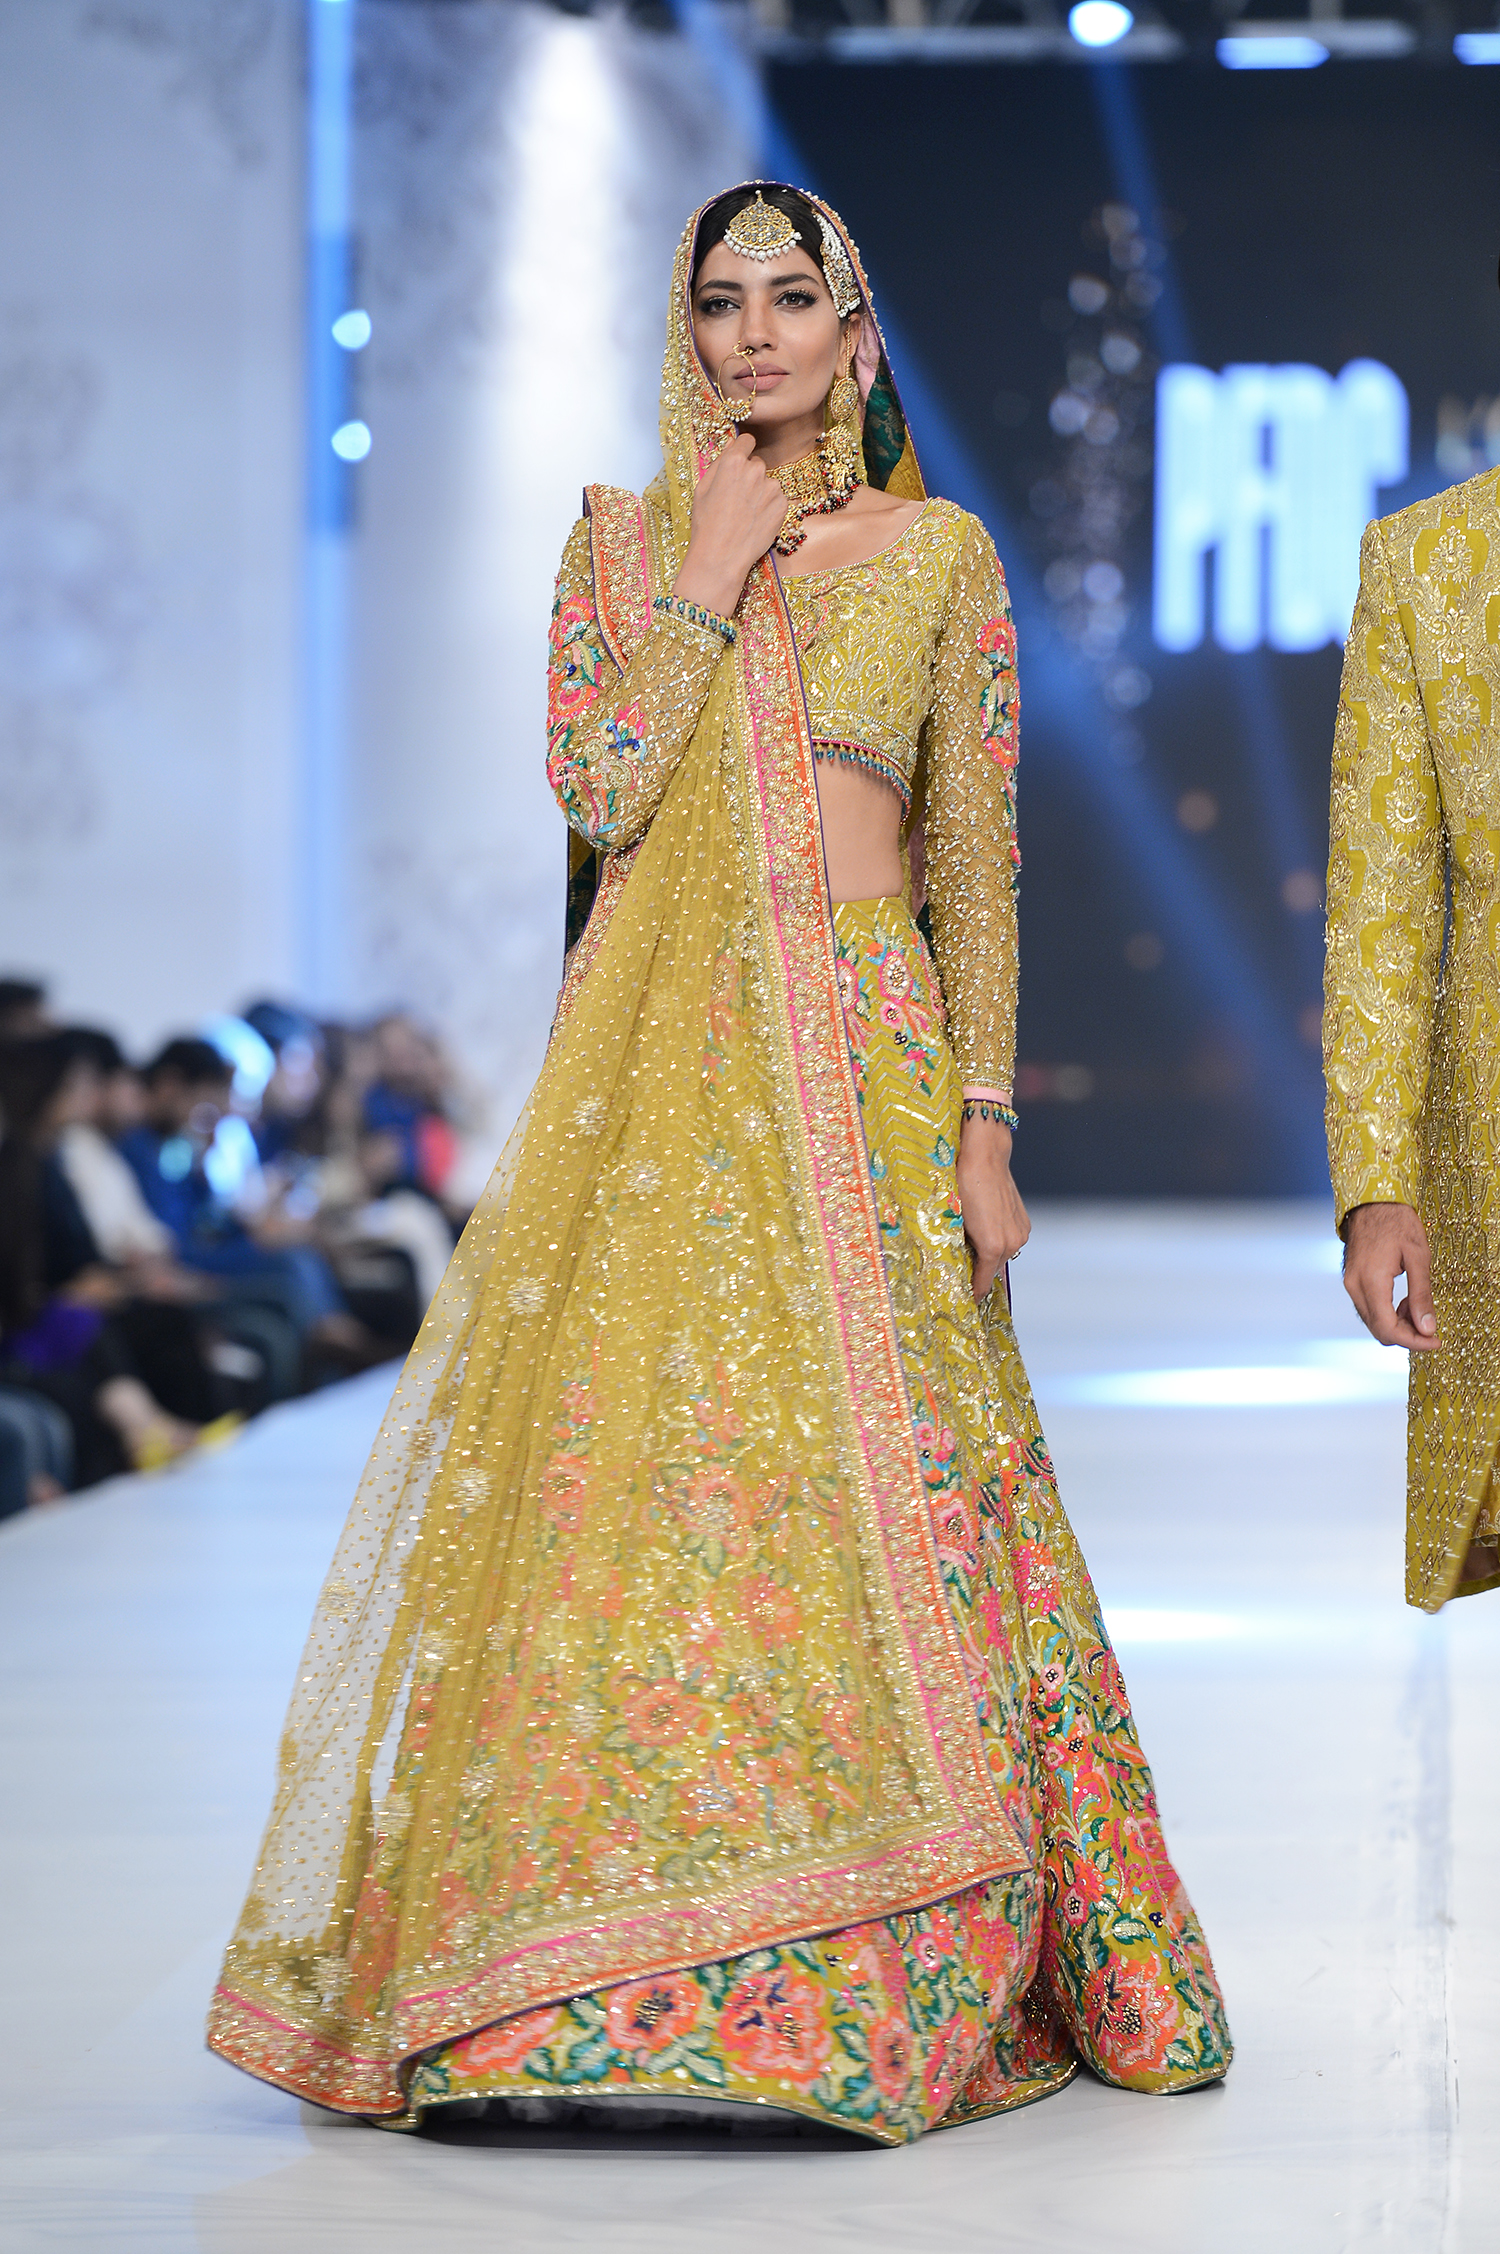 Nomi Ansari - PFDC L'Oréal Paris Bridal Week - Photography by Faisal Farooqui, Dragonfly